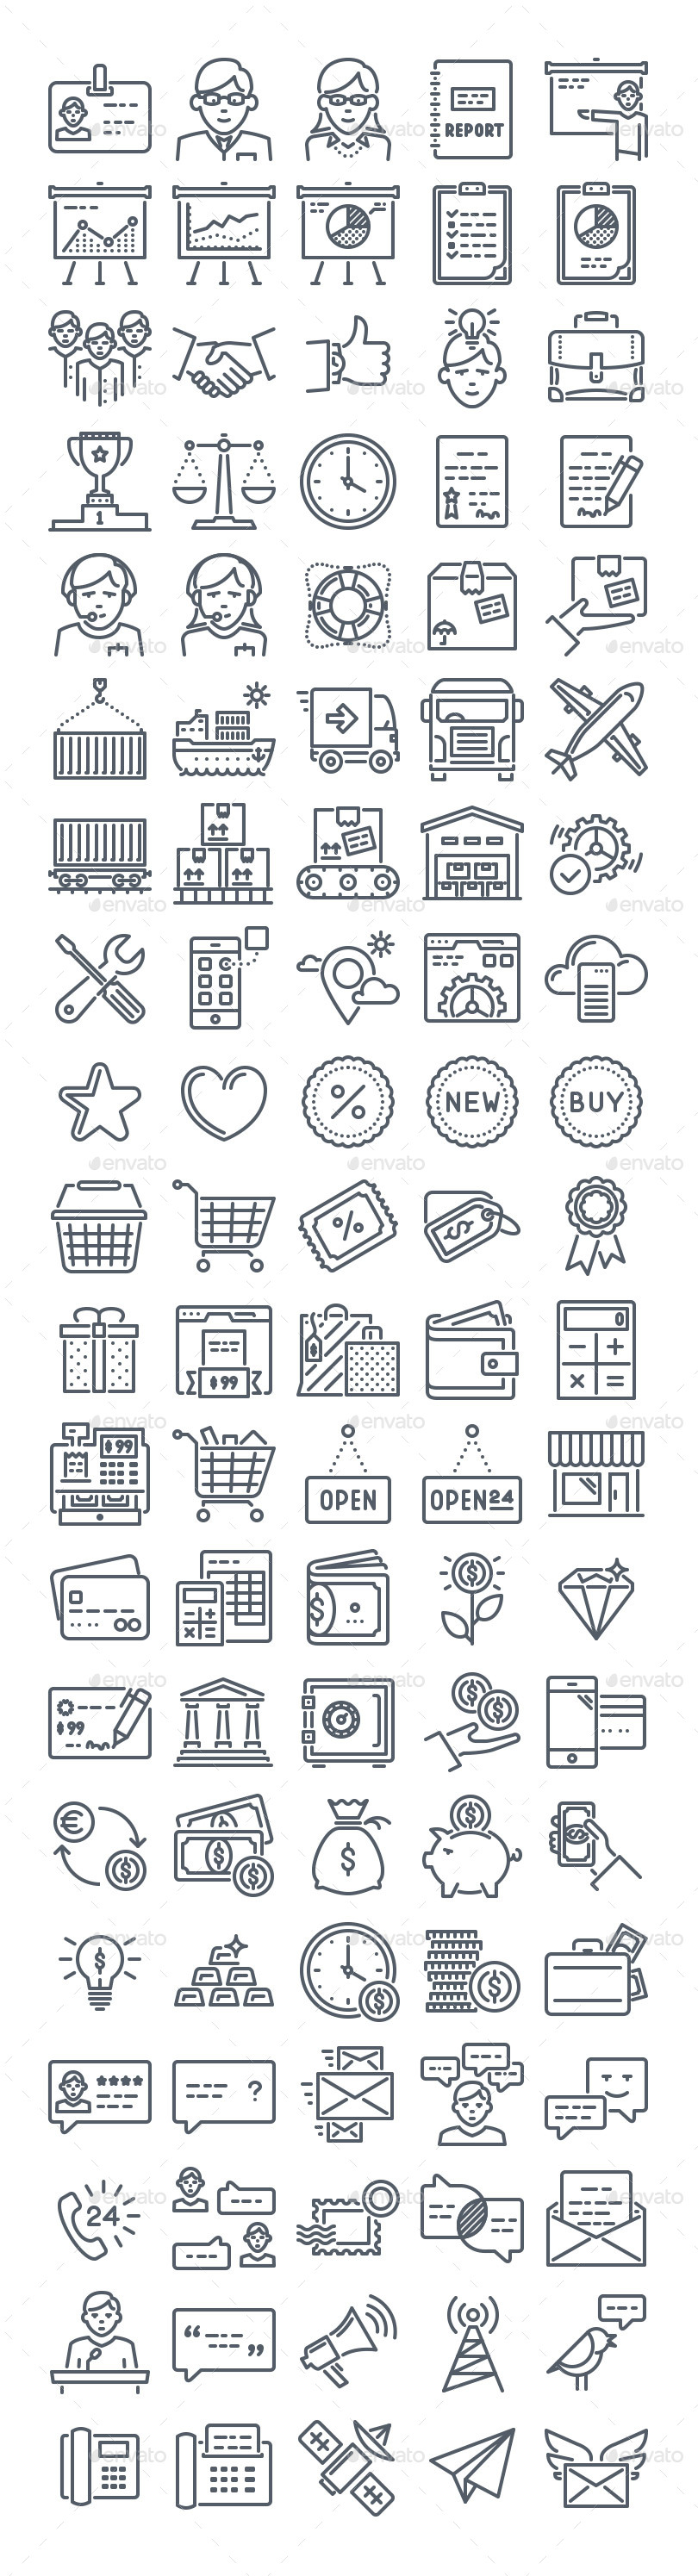 ecomerce-line-icons